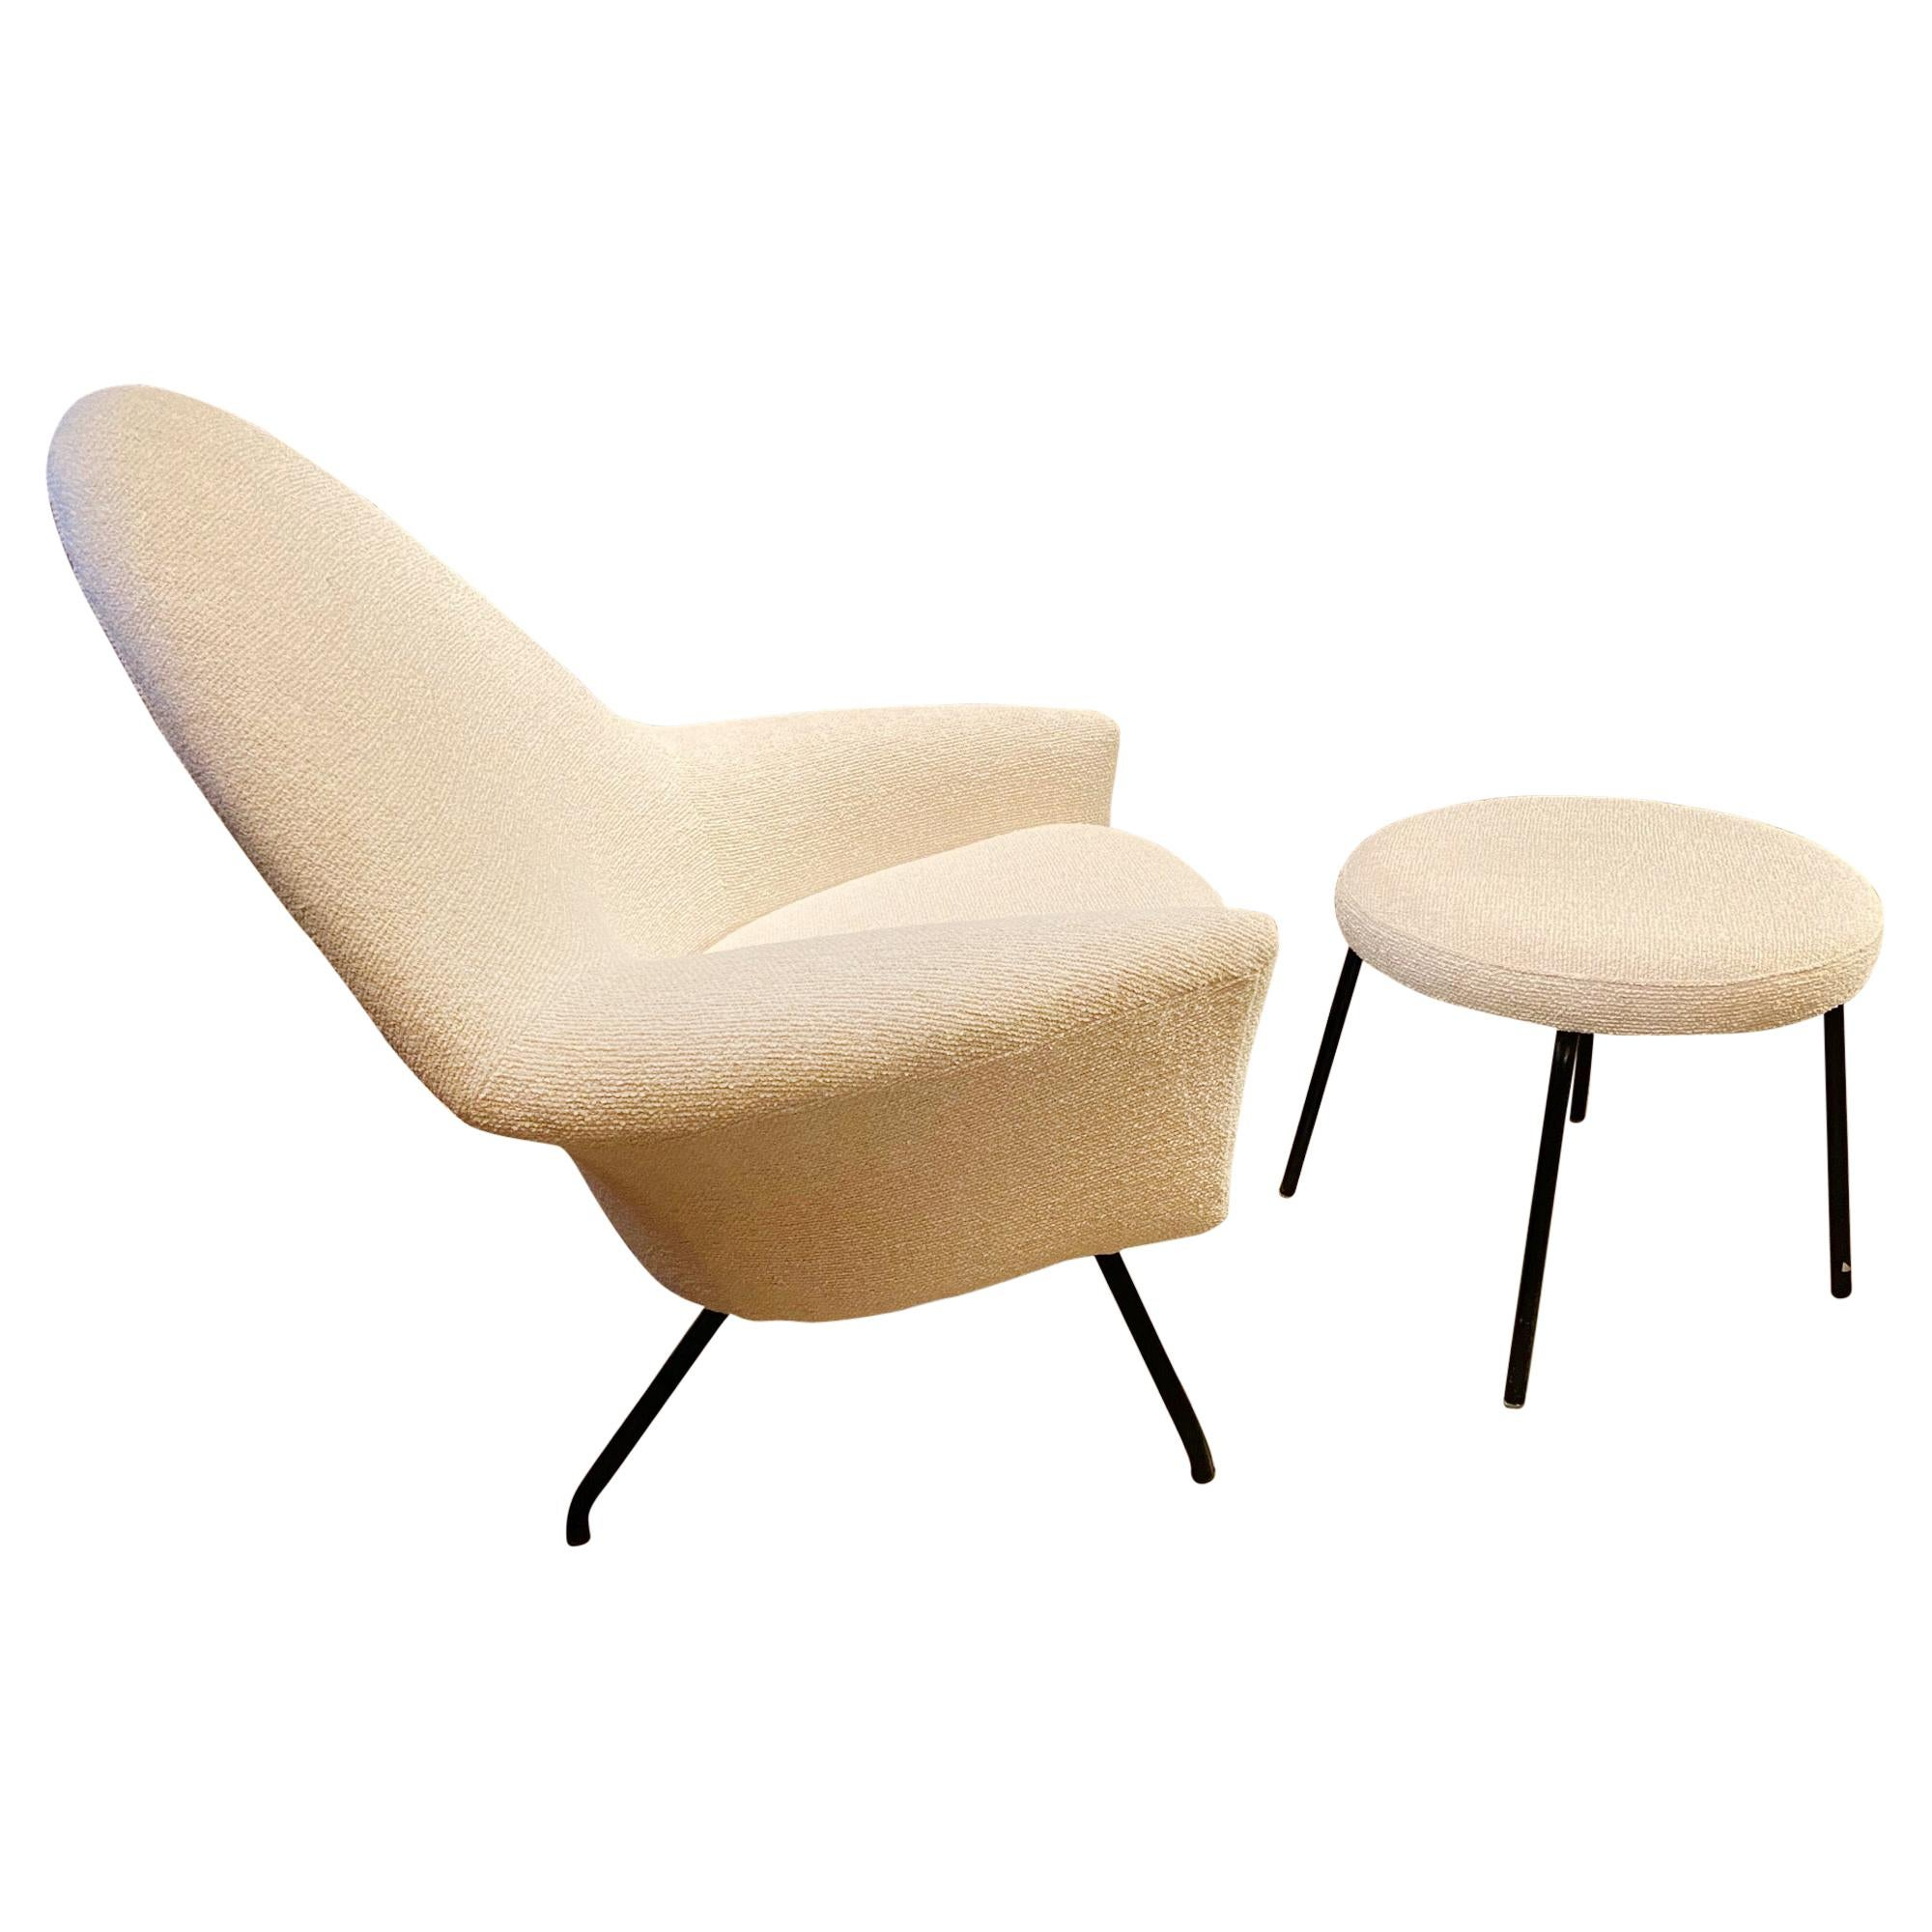 """""""770"""" Armchair and Ottoman by Joseph-André Motte for Steiner, France, 1950s"""